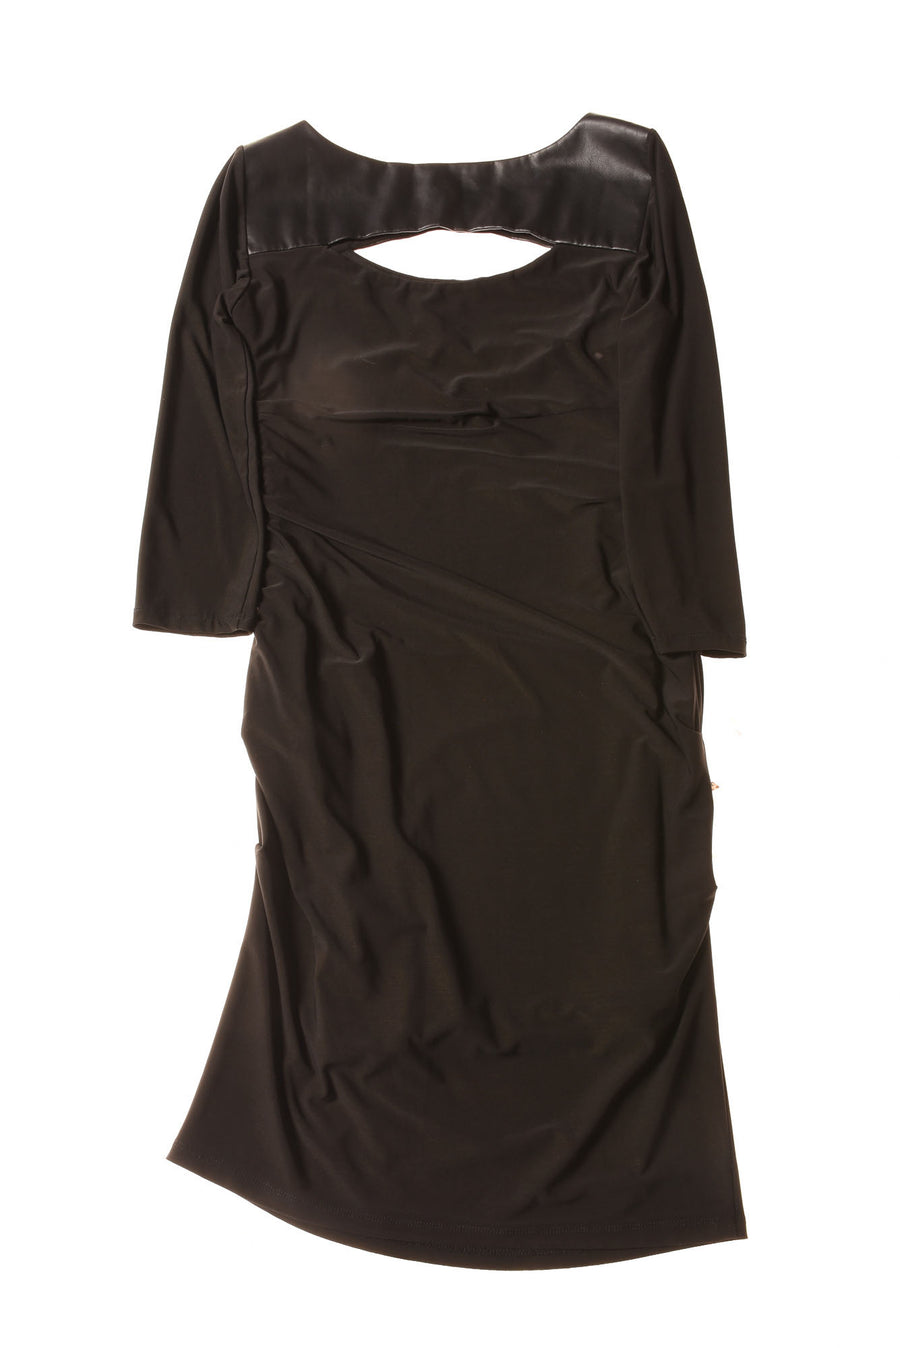 USED Laundry Women's Dress 6 Black